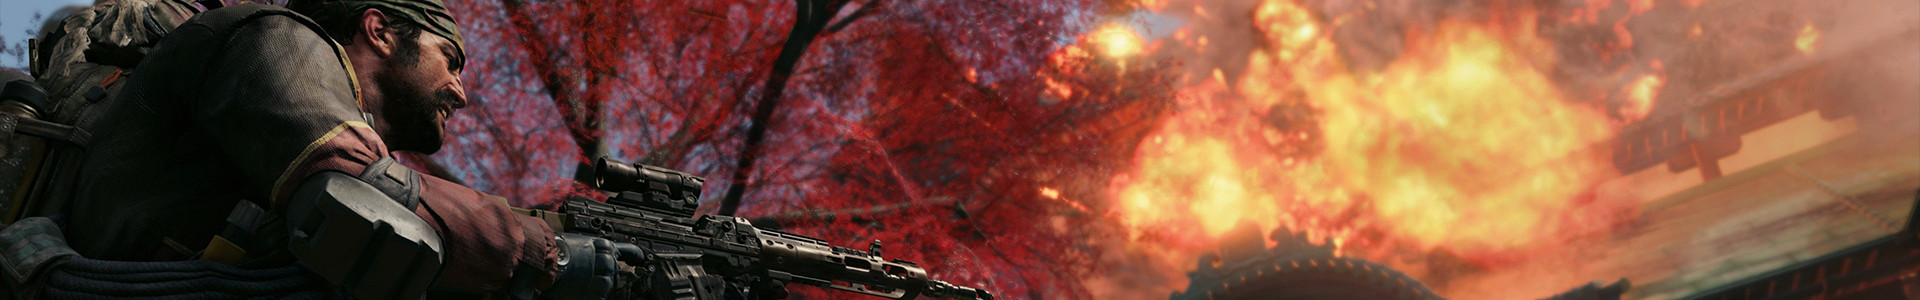 call-of-duty-black-ops-4-banner